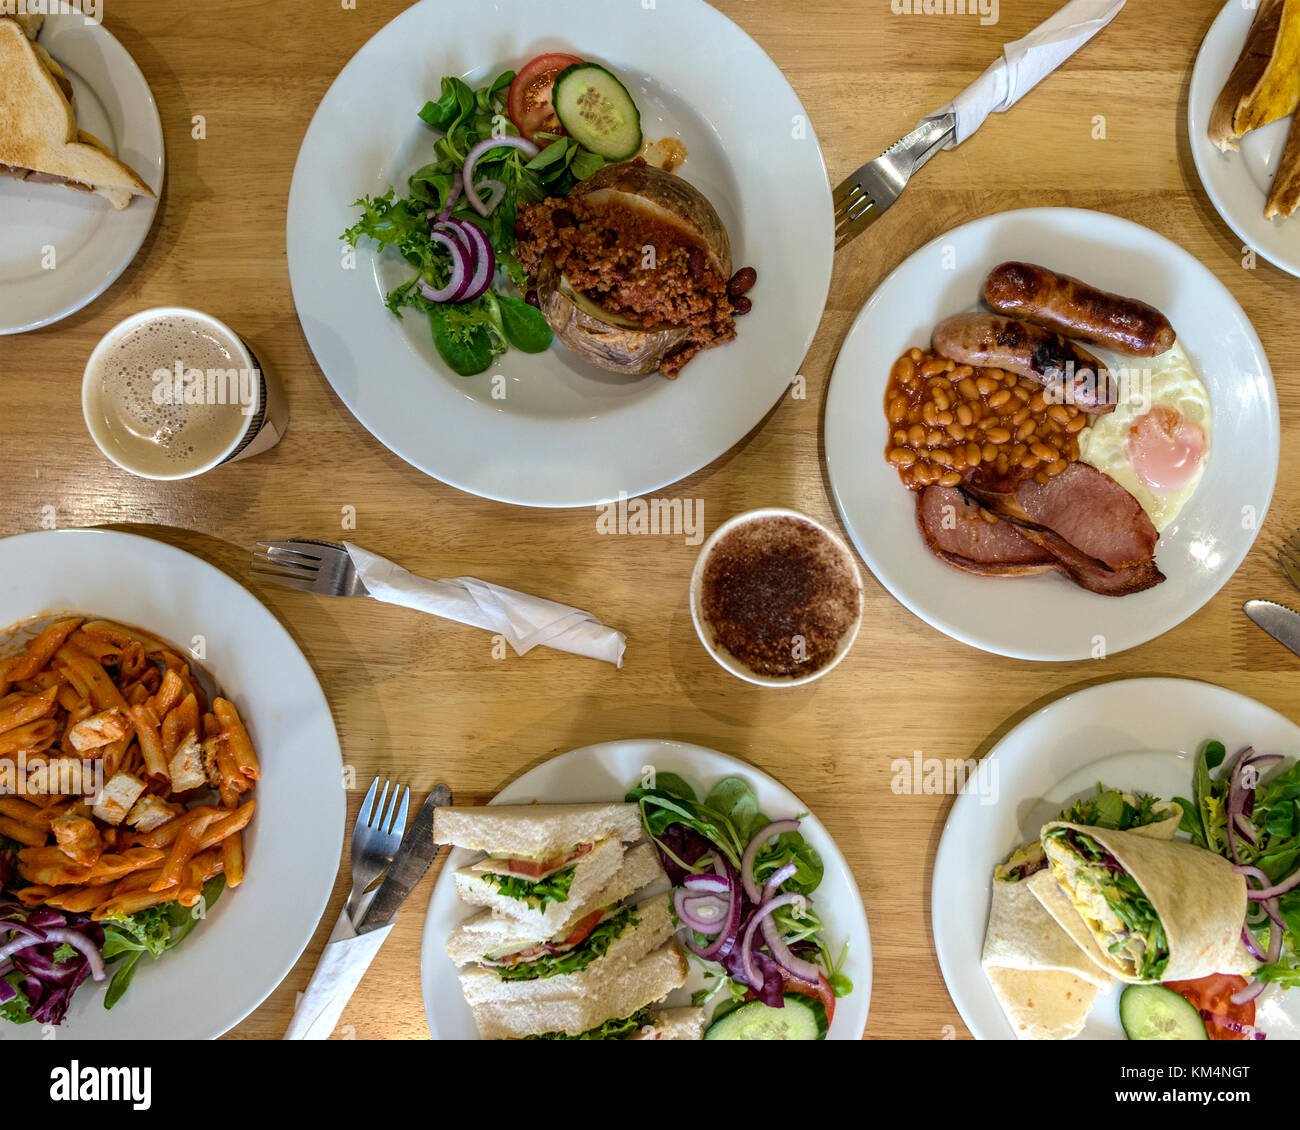 Cafe Food Shot From Above Stock Photo